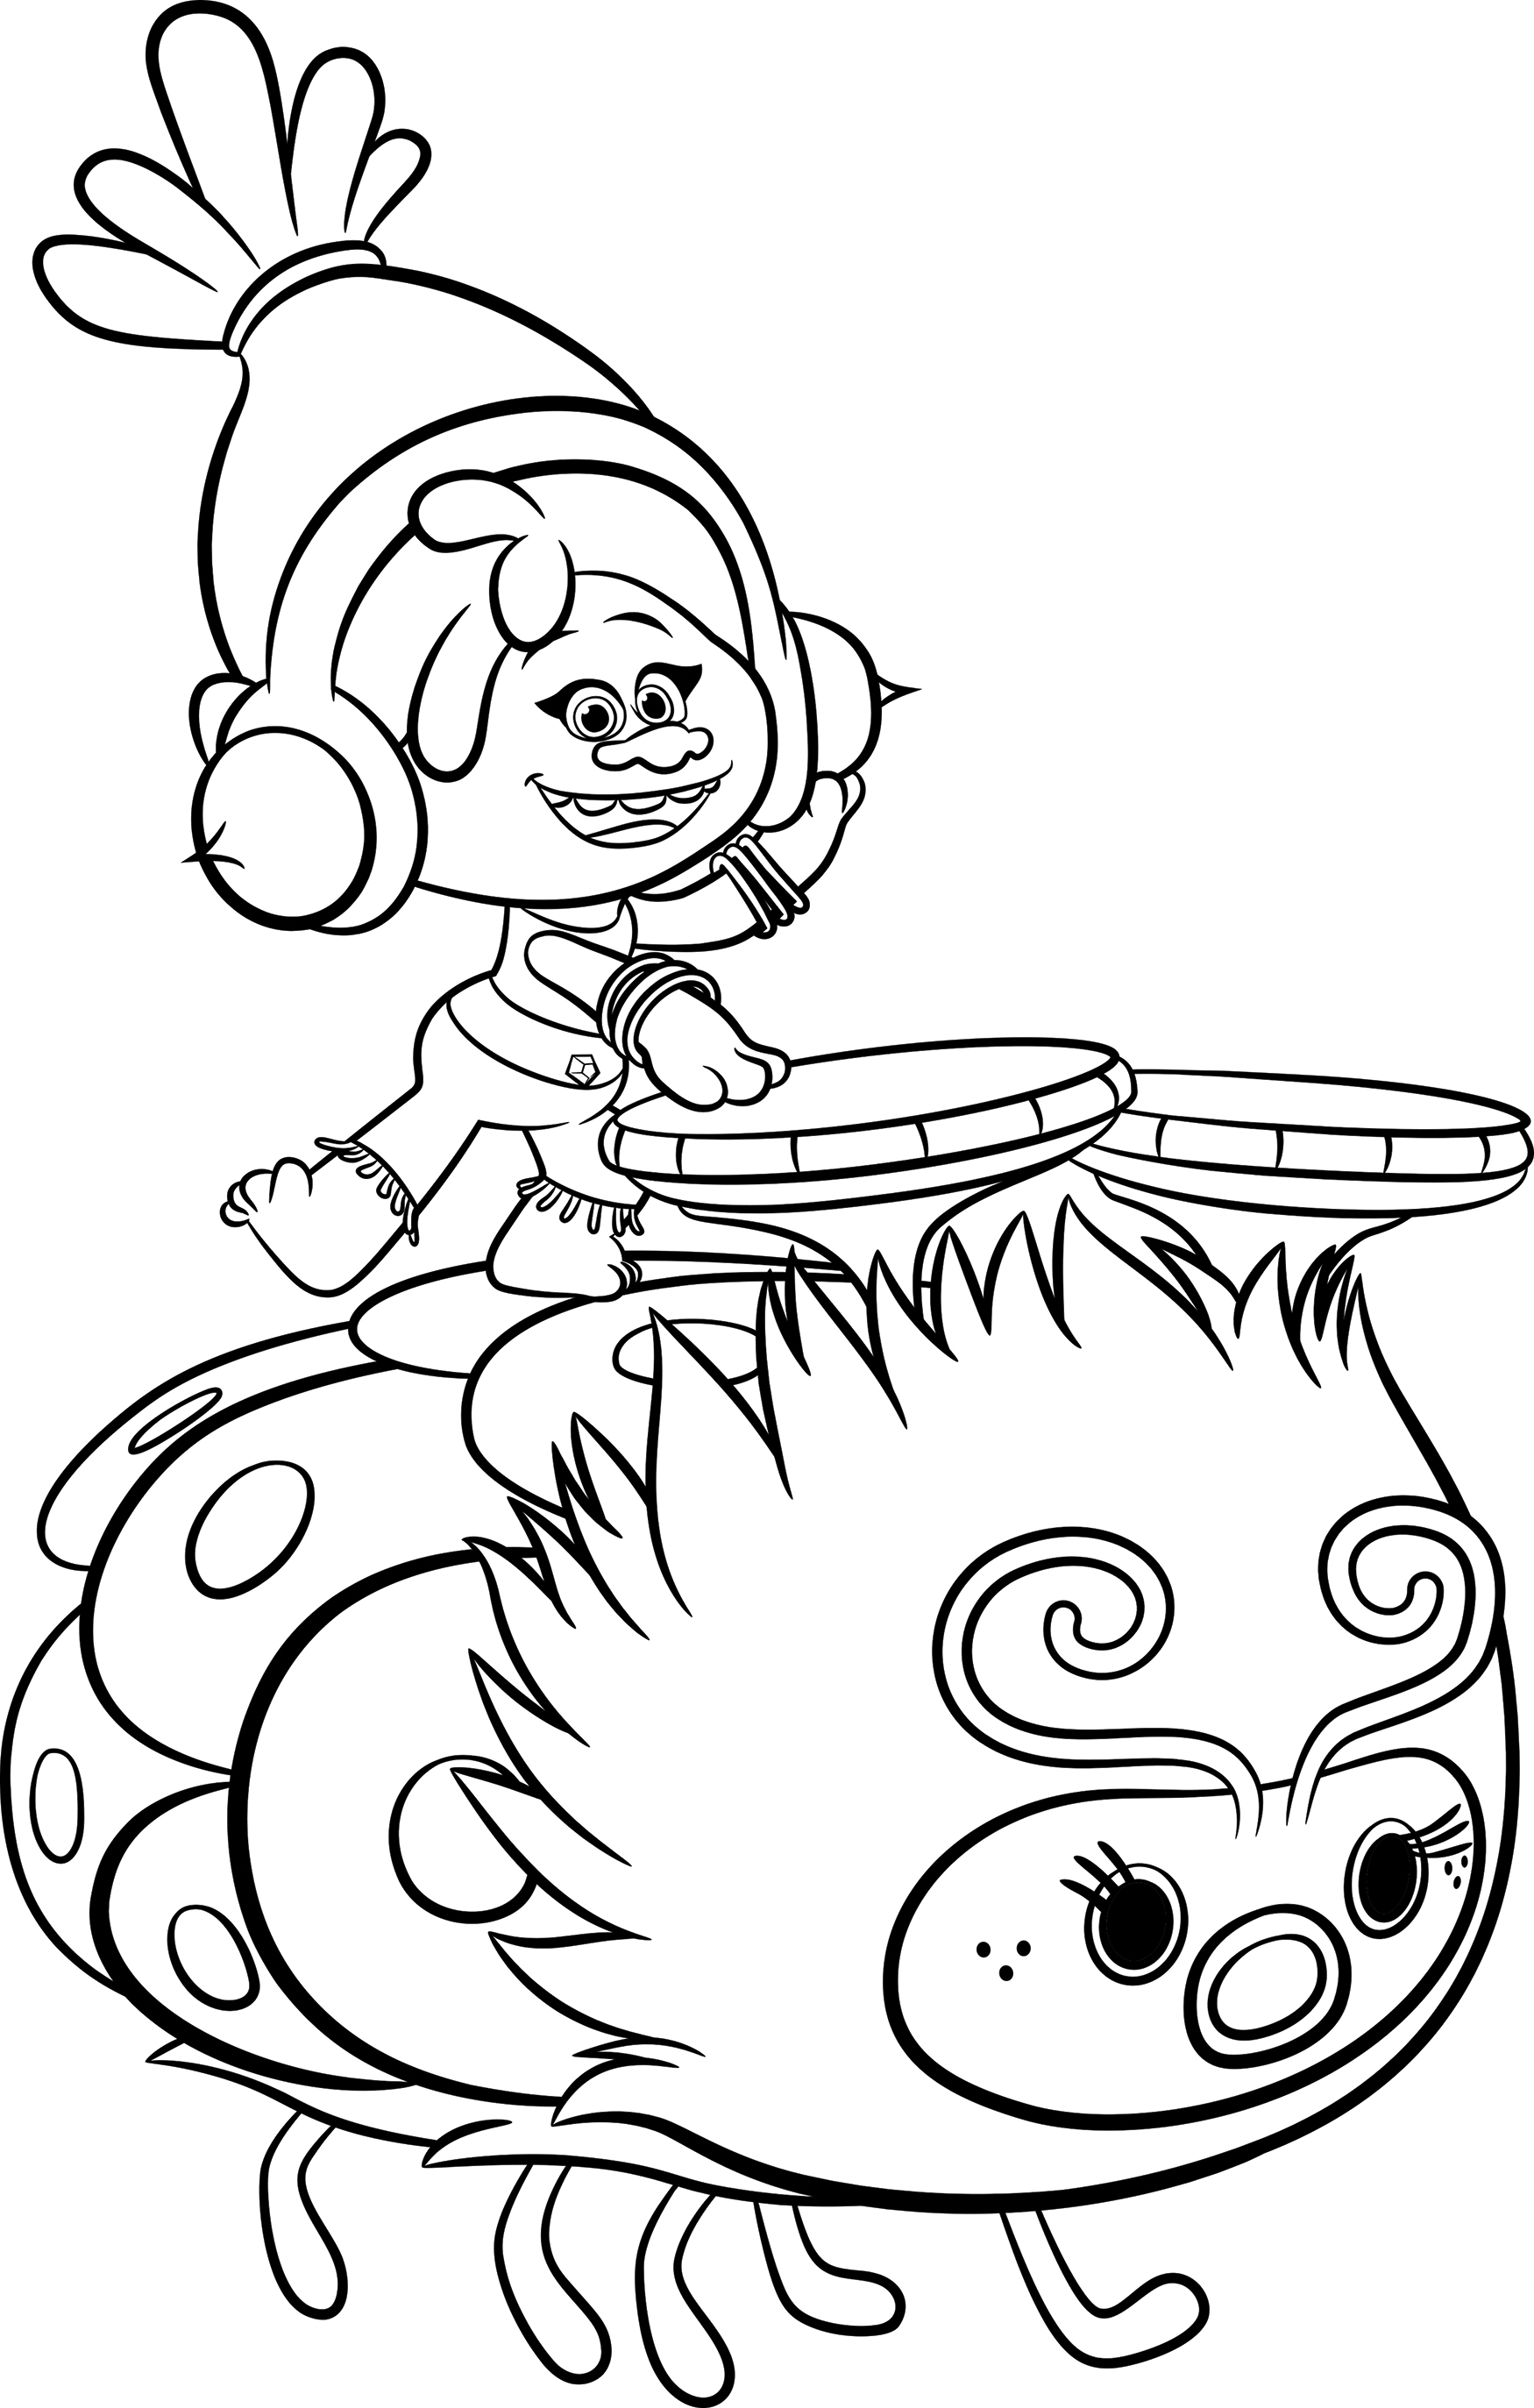 adventure time coloring pages trolls digital hd free activity sheets - Adventure Time Coloring Pages Free 2